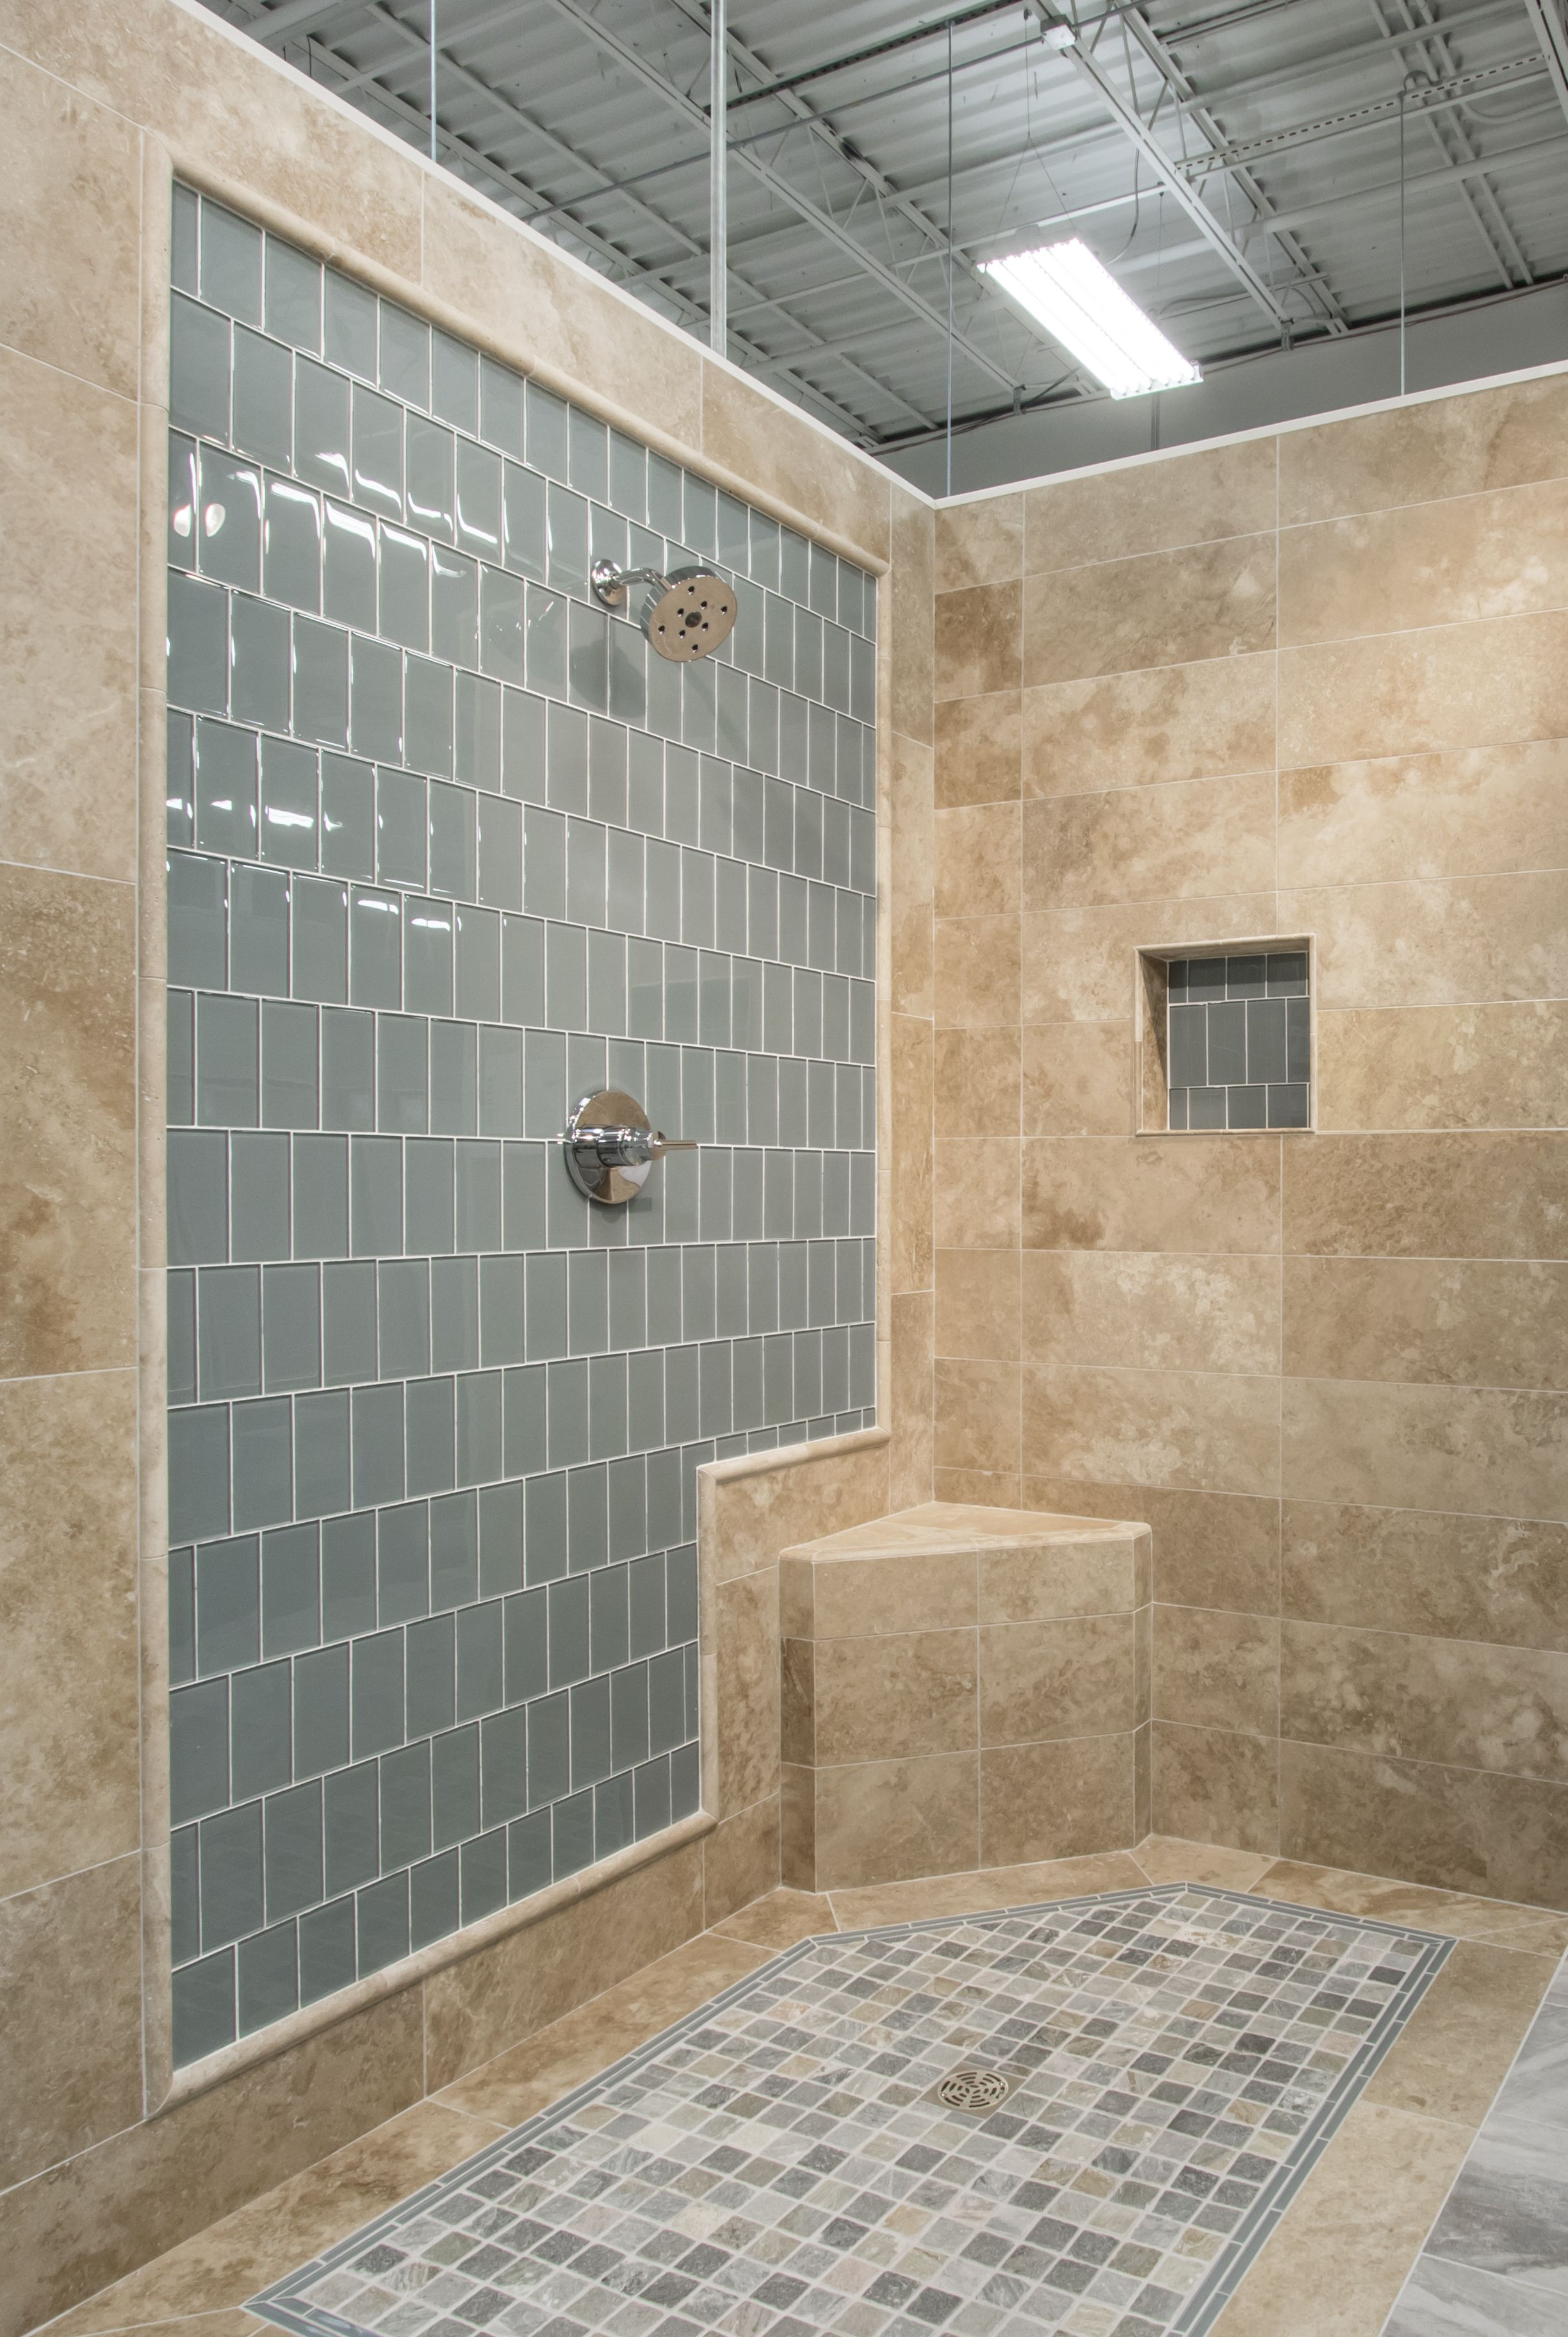 Enhance Traditional And Contemporary Settings With The Soothing Aquamarine  Hue Of This Glass Focal Point Bathroom Shower Tile   Water Glass Subway  Tile ...